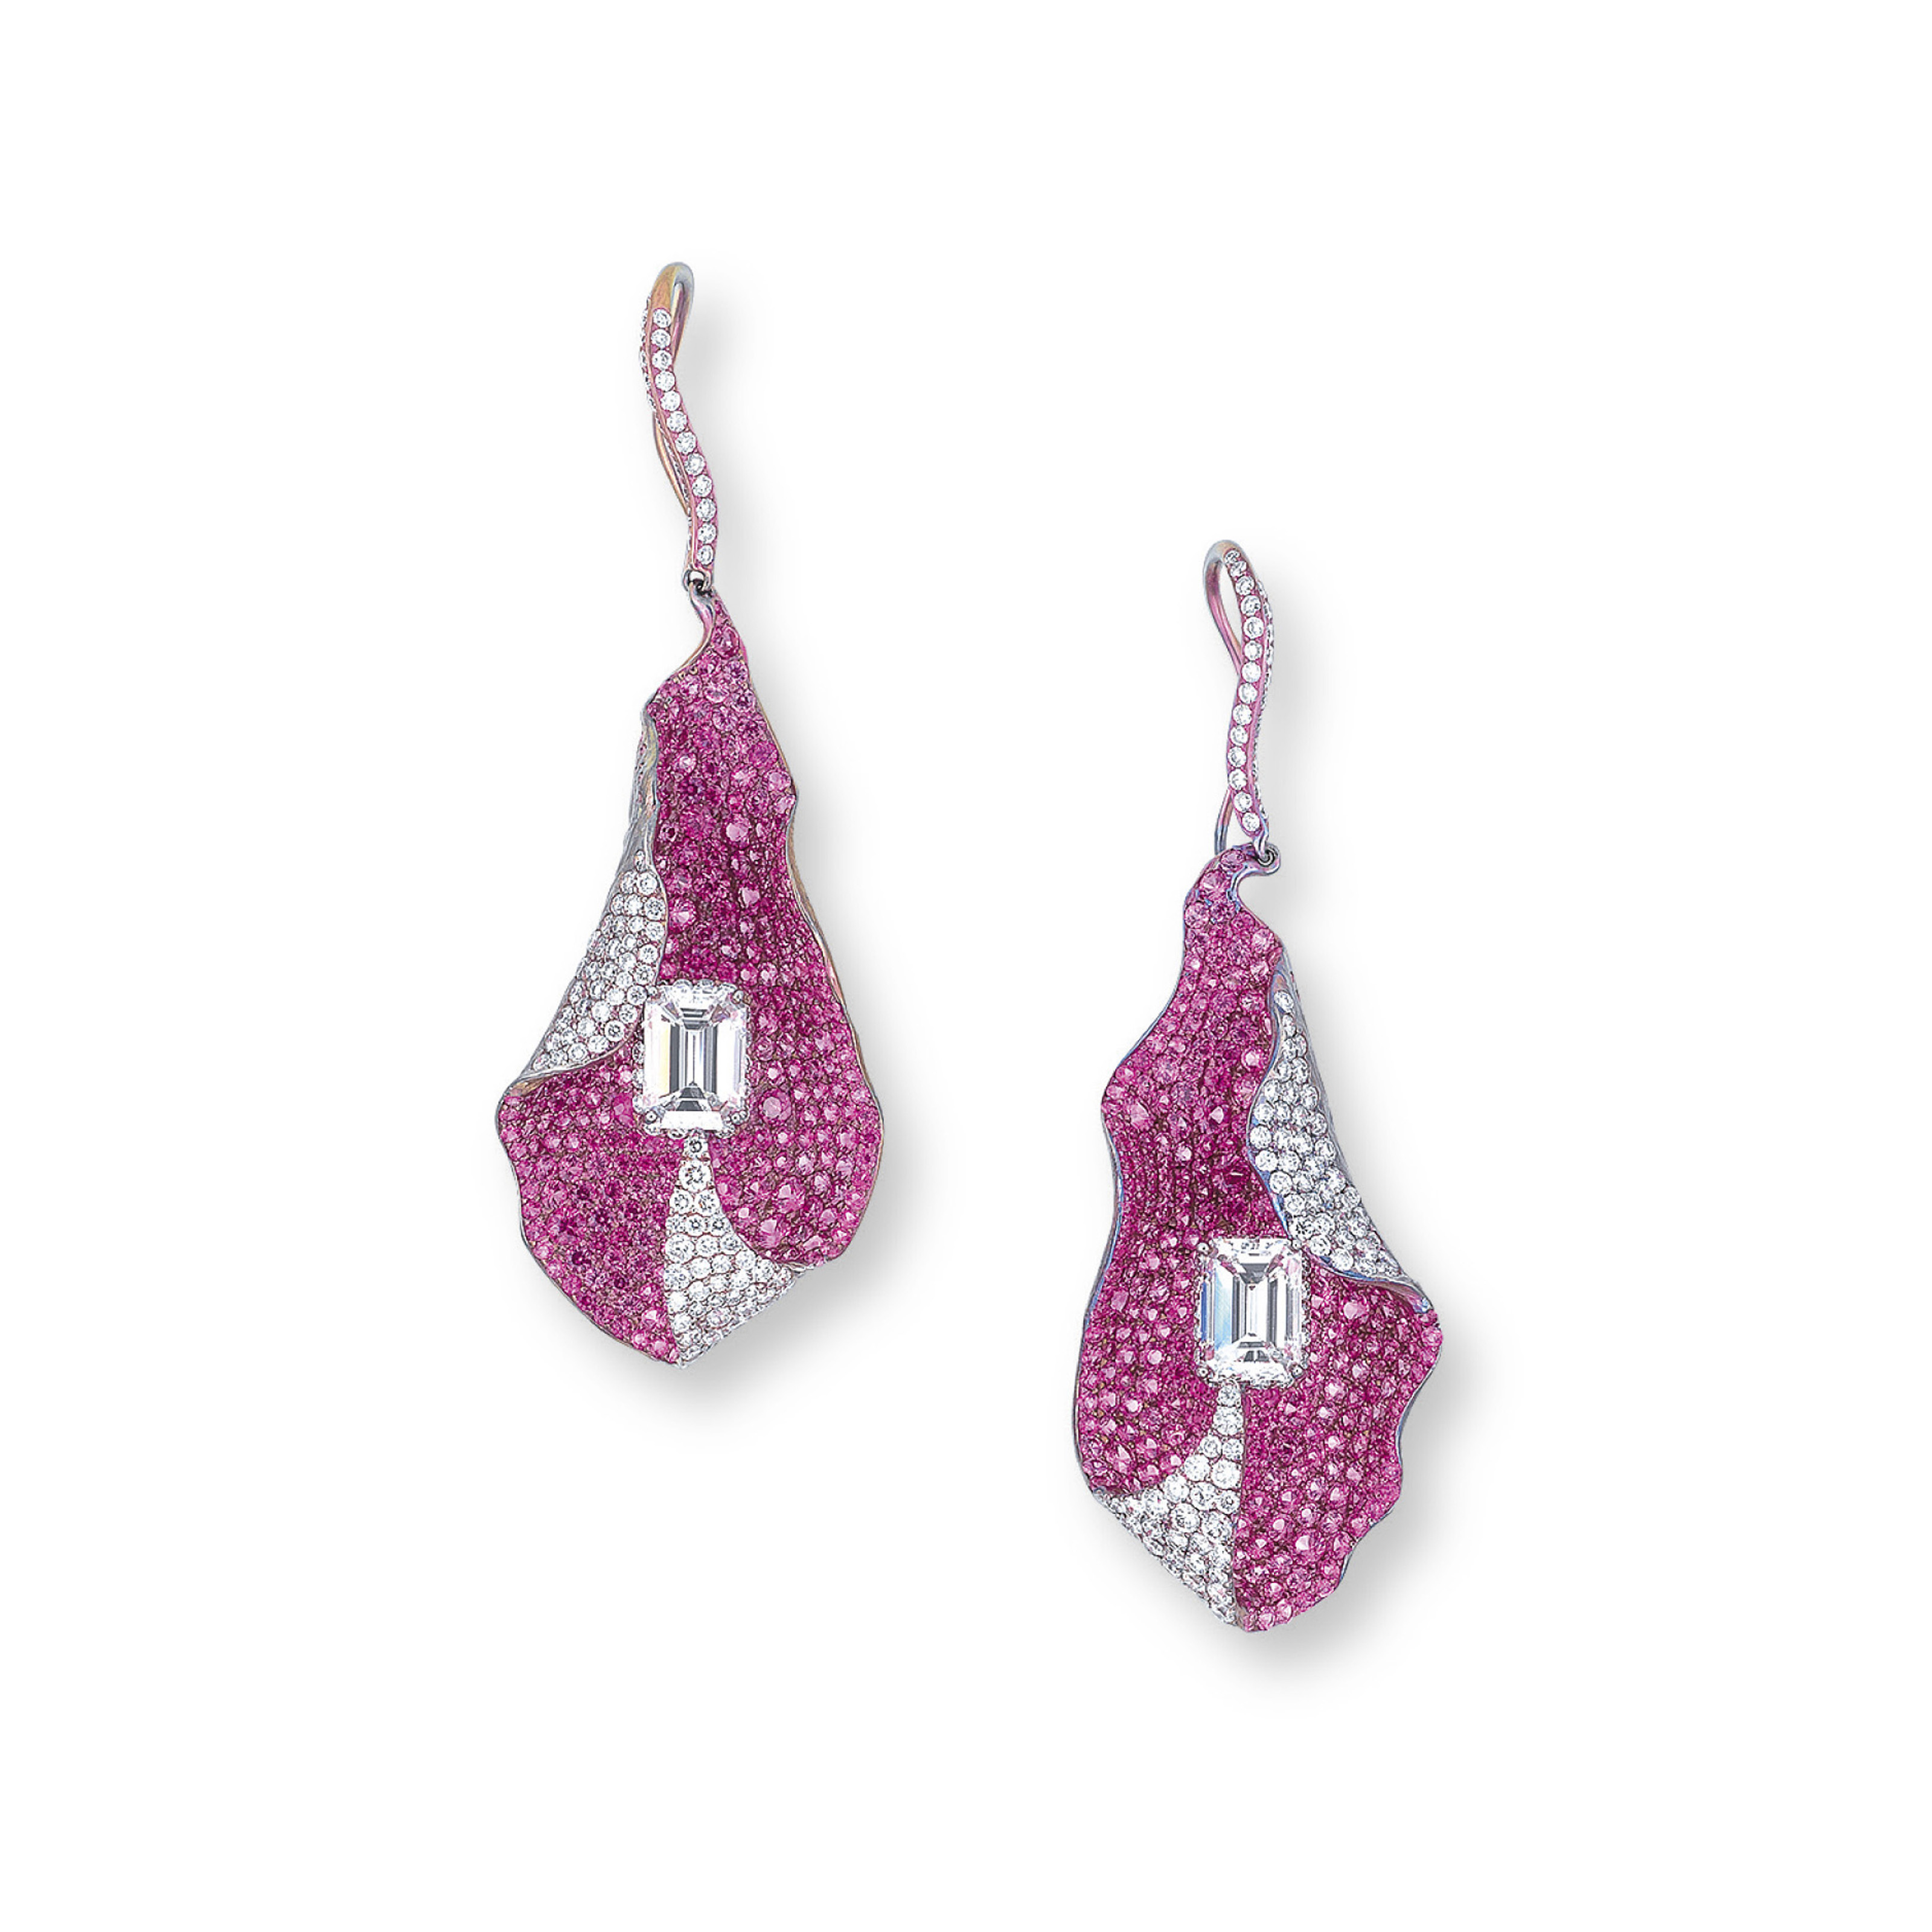 A PAIR OF DIAMOND AND PINK SAPPHIRE EAR PENDANTS, BY WALLACE CHAN